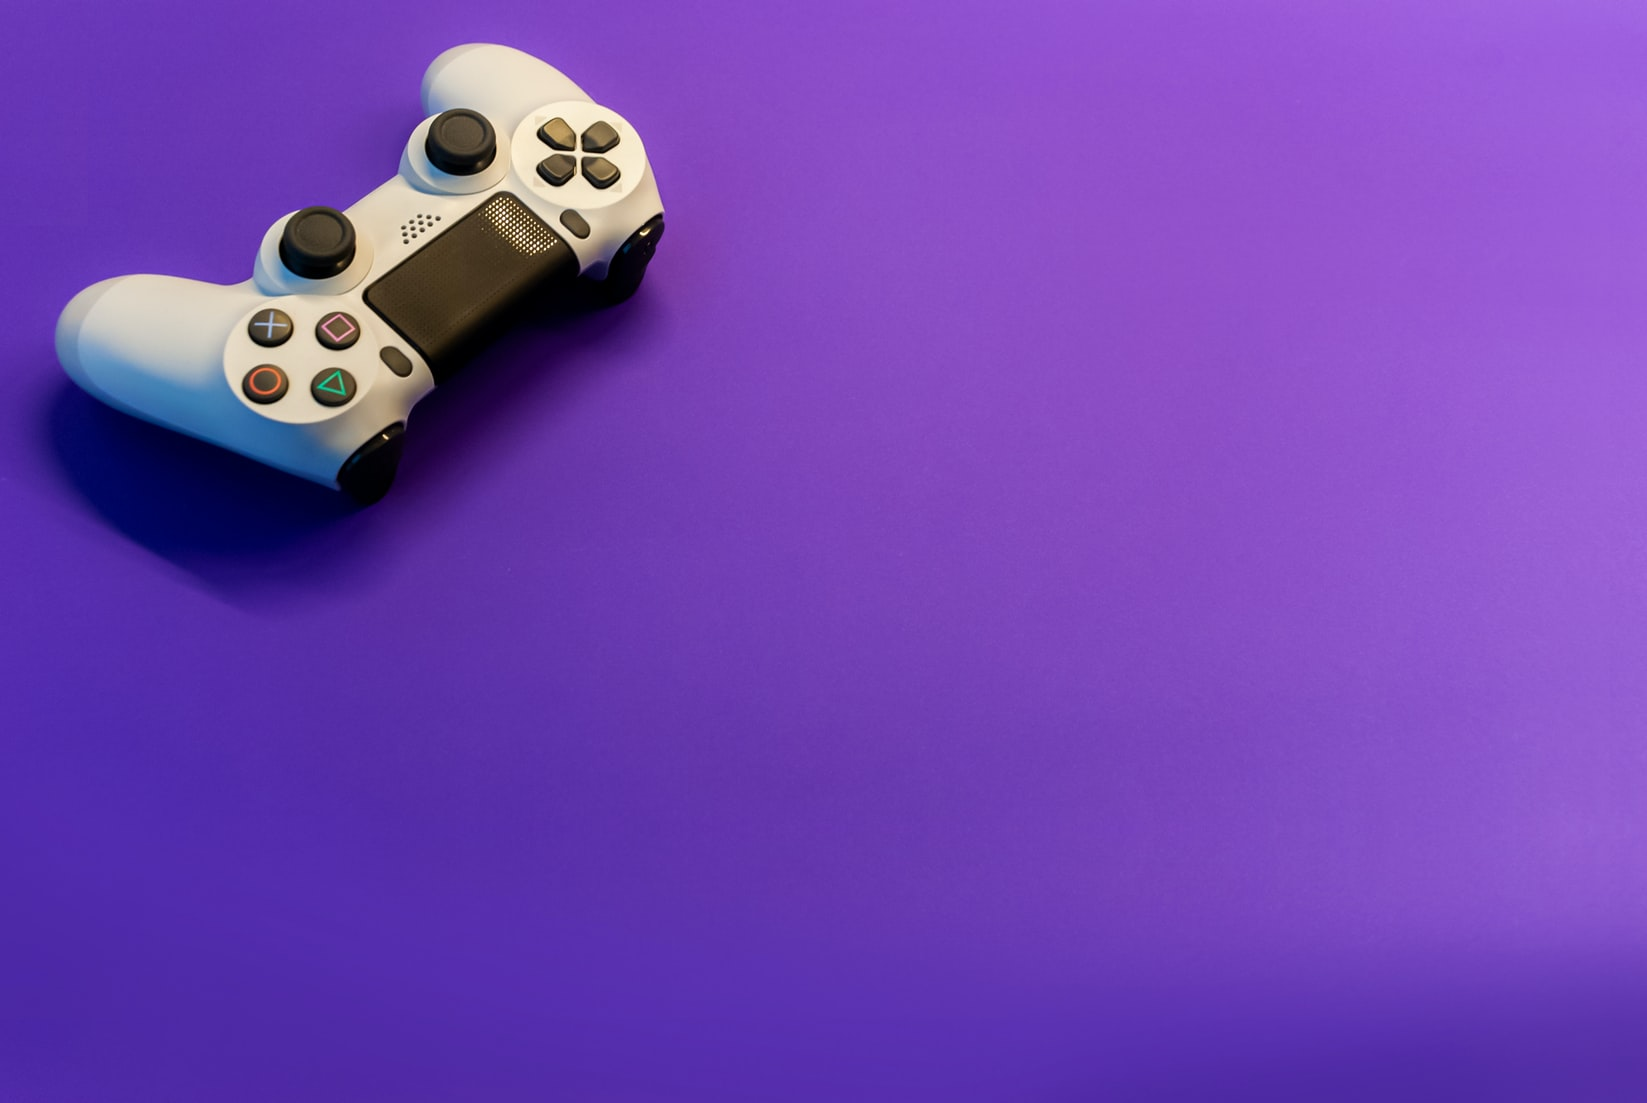 a videogame controller on a purpel background